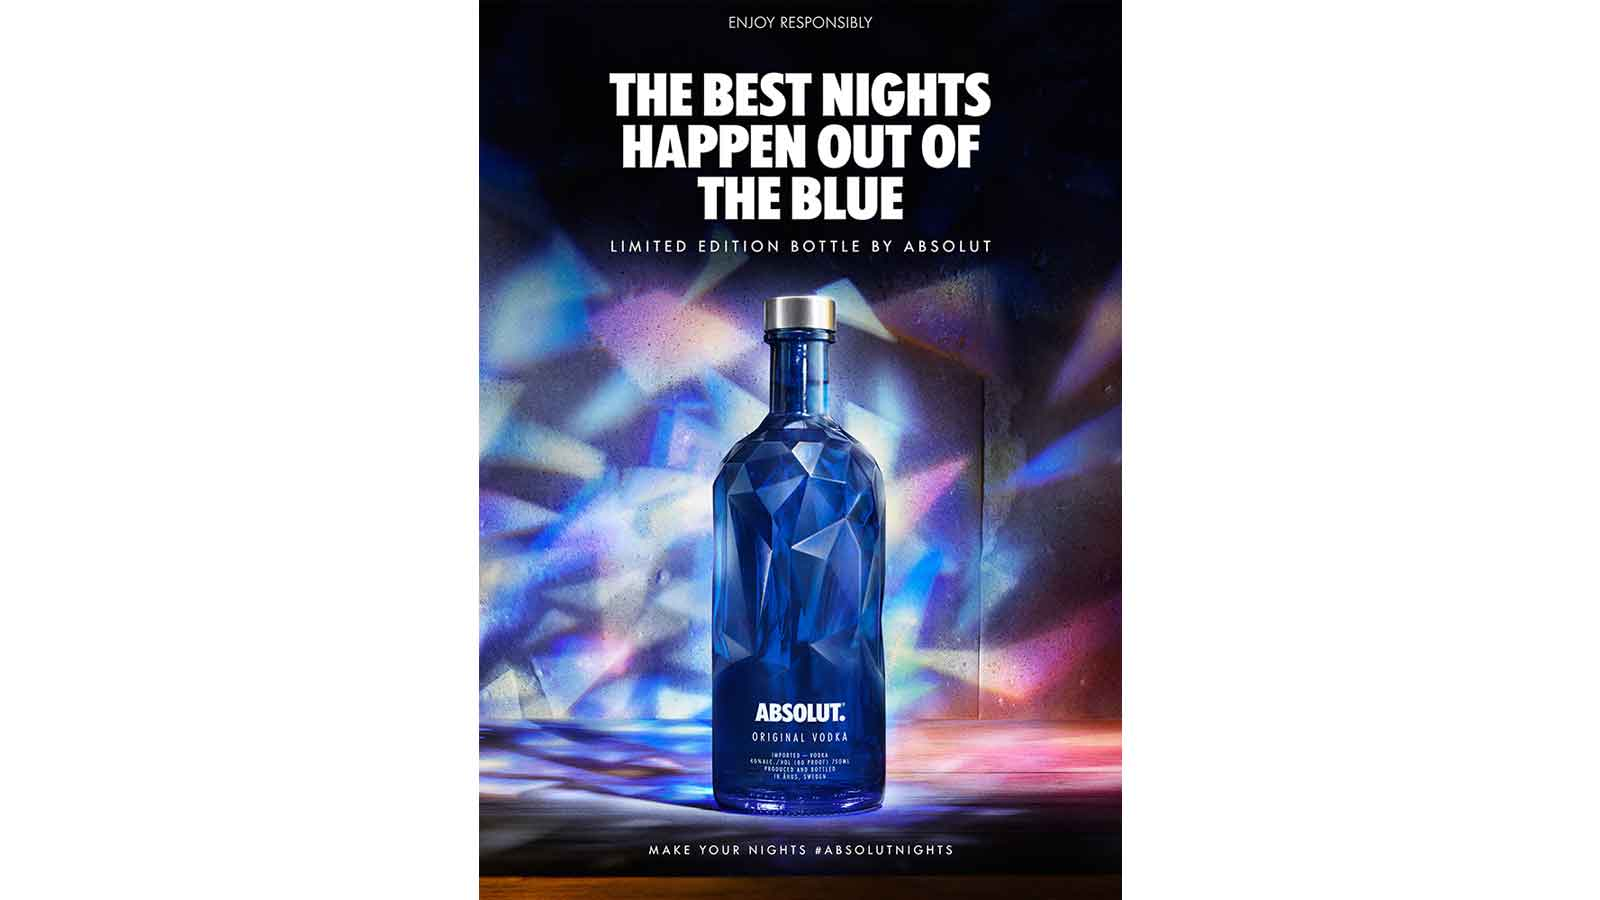 Open up to the unexpected with the Absolut Facet limited edition bottle